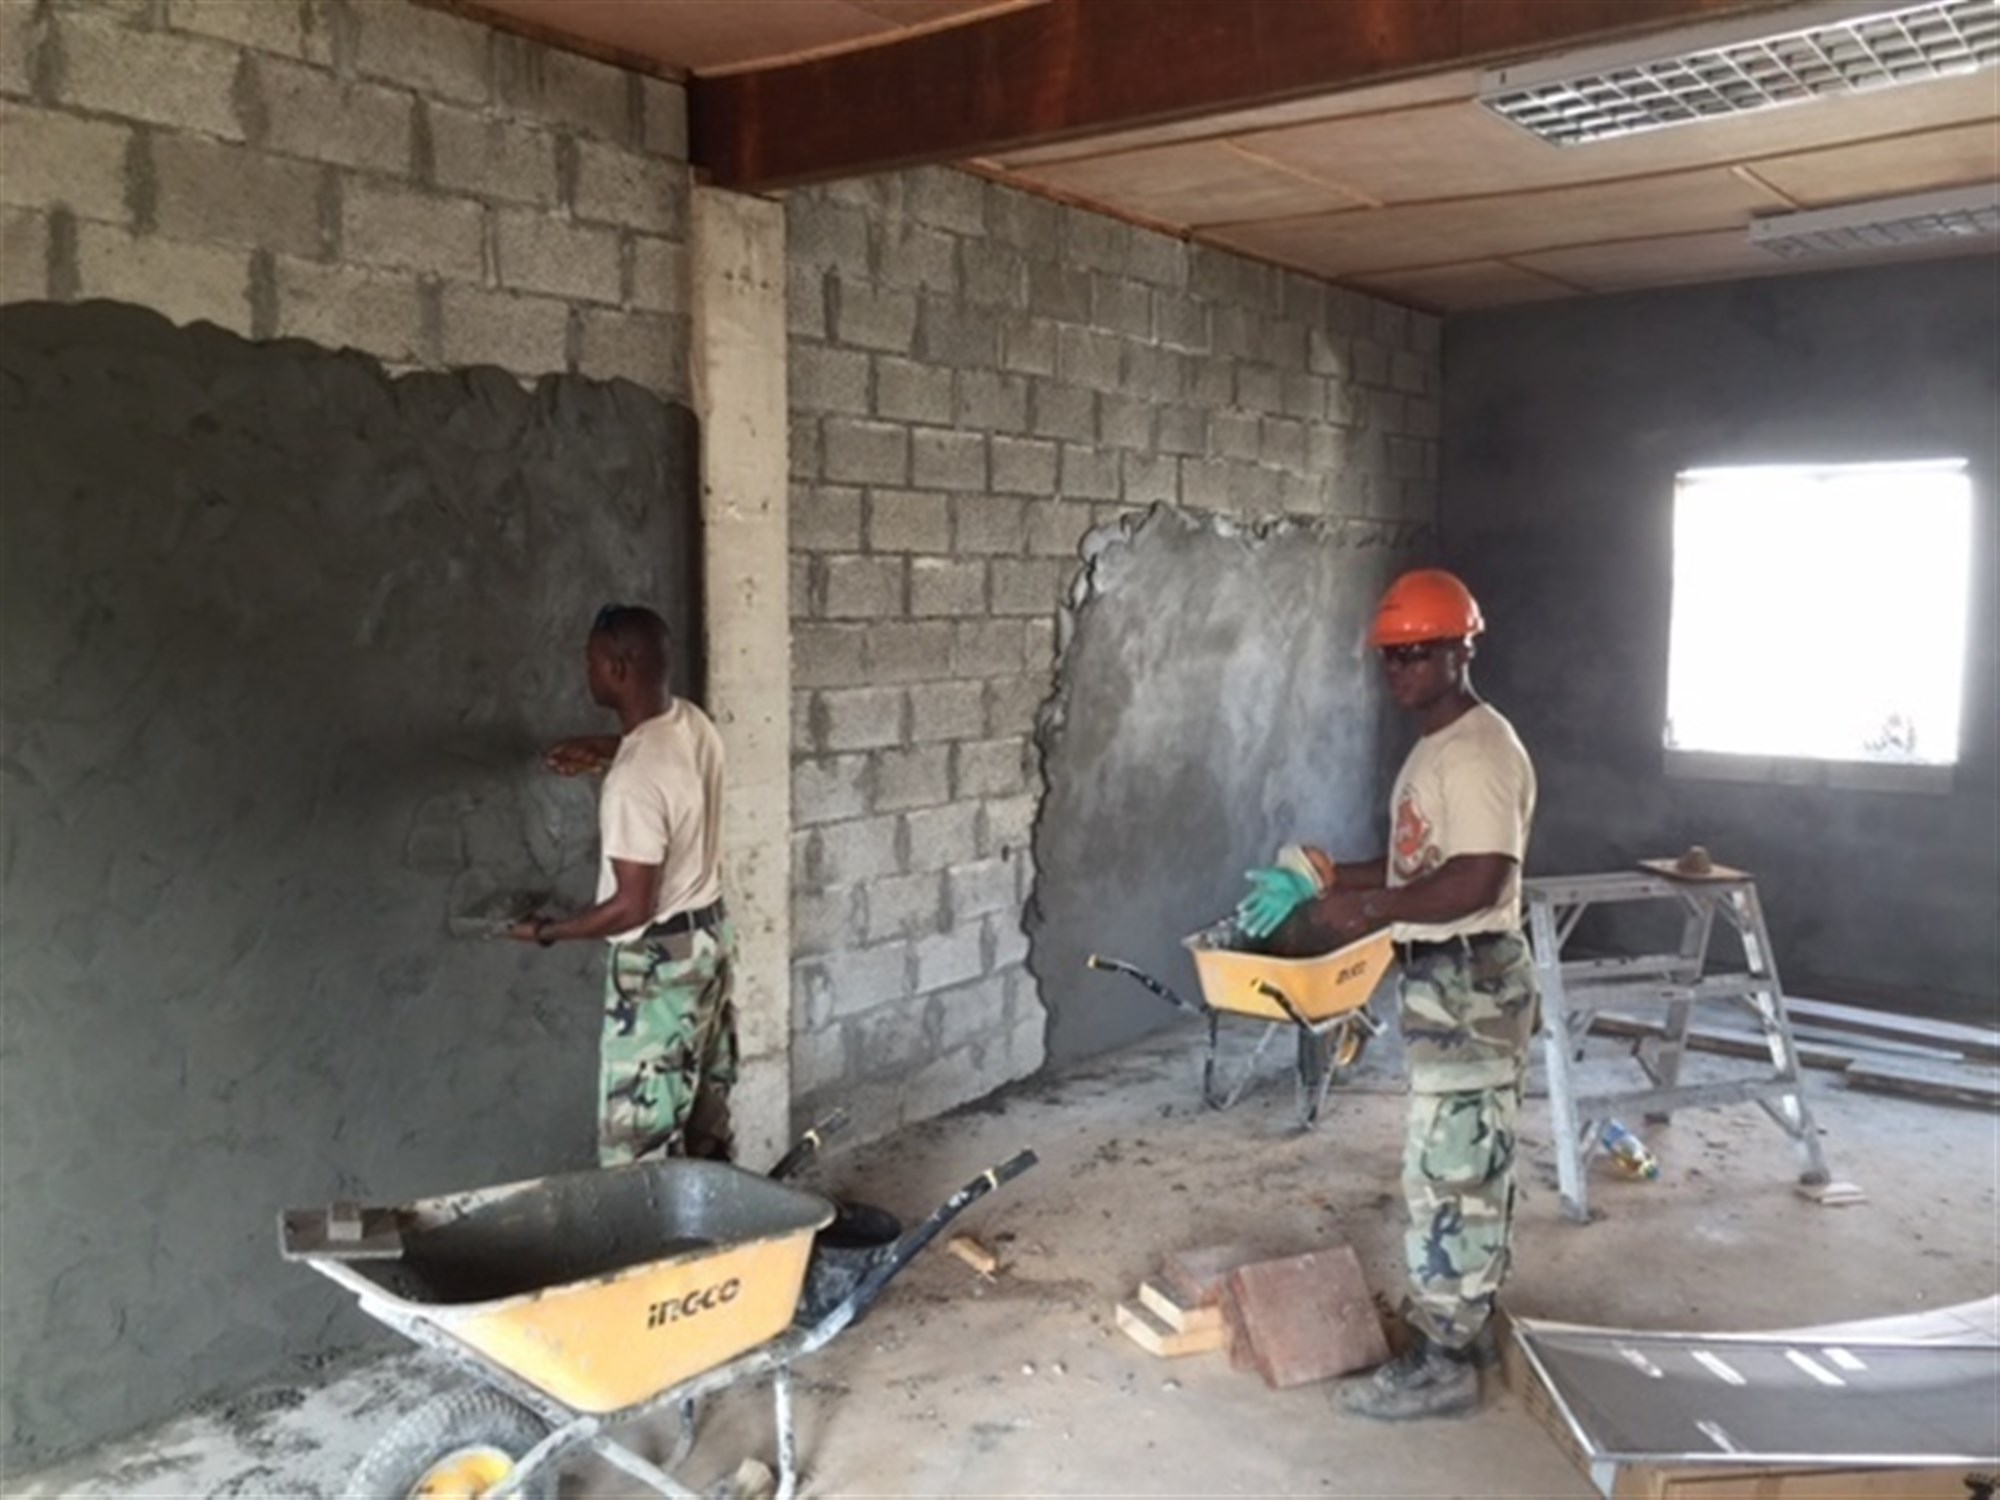 MONROVIA, Liberia - Armed Forces of Liberia Soldiers apply a cement-like mud to the interior walls of two new multipurpose buildings, Feb. 3, 2016, at the Edward Binyah Kesselly military training facility in Monrovia, Liberia. The buildings were constructed in partnership with Michigan Army National engineers during four Security Cooperation Opportunity Unit Training rotations. Maj. Gen. Gregory Vadnais, adjutant general of the Michigan National Guard, traveled to Liberia to cut the ribbon on the buildings and celebrate Liberian Armed Forces Day, Feb. 10, 2016, with the last SCOUT rotation, the MIARNG 1434th Engineer Company, AFL leaders and Liberian President Ellen Johnson Sirleaf. (U.S. Army National Guard photo by Maj. David Huber/Released)